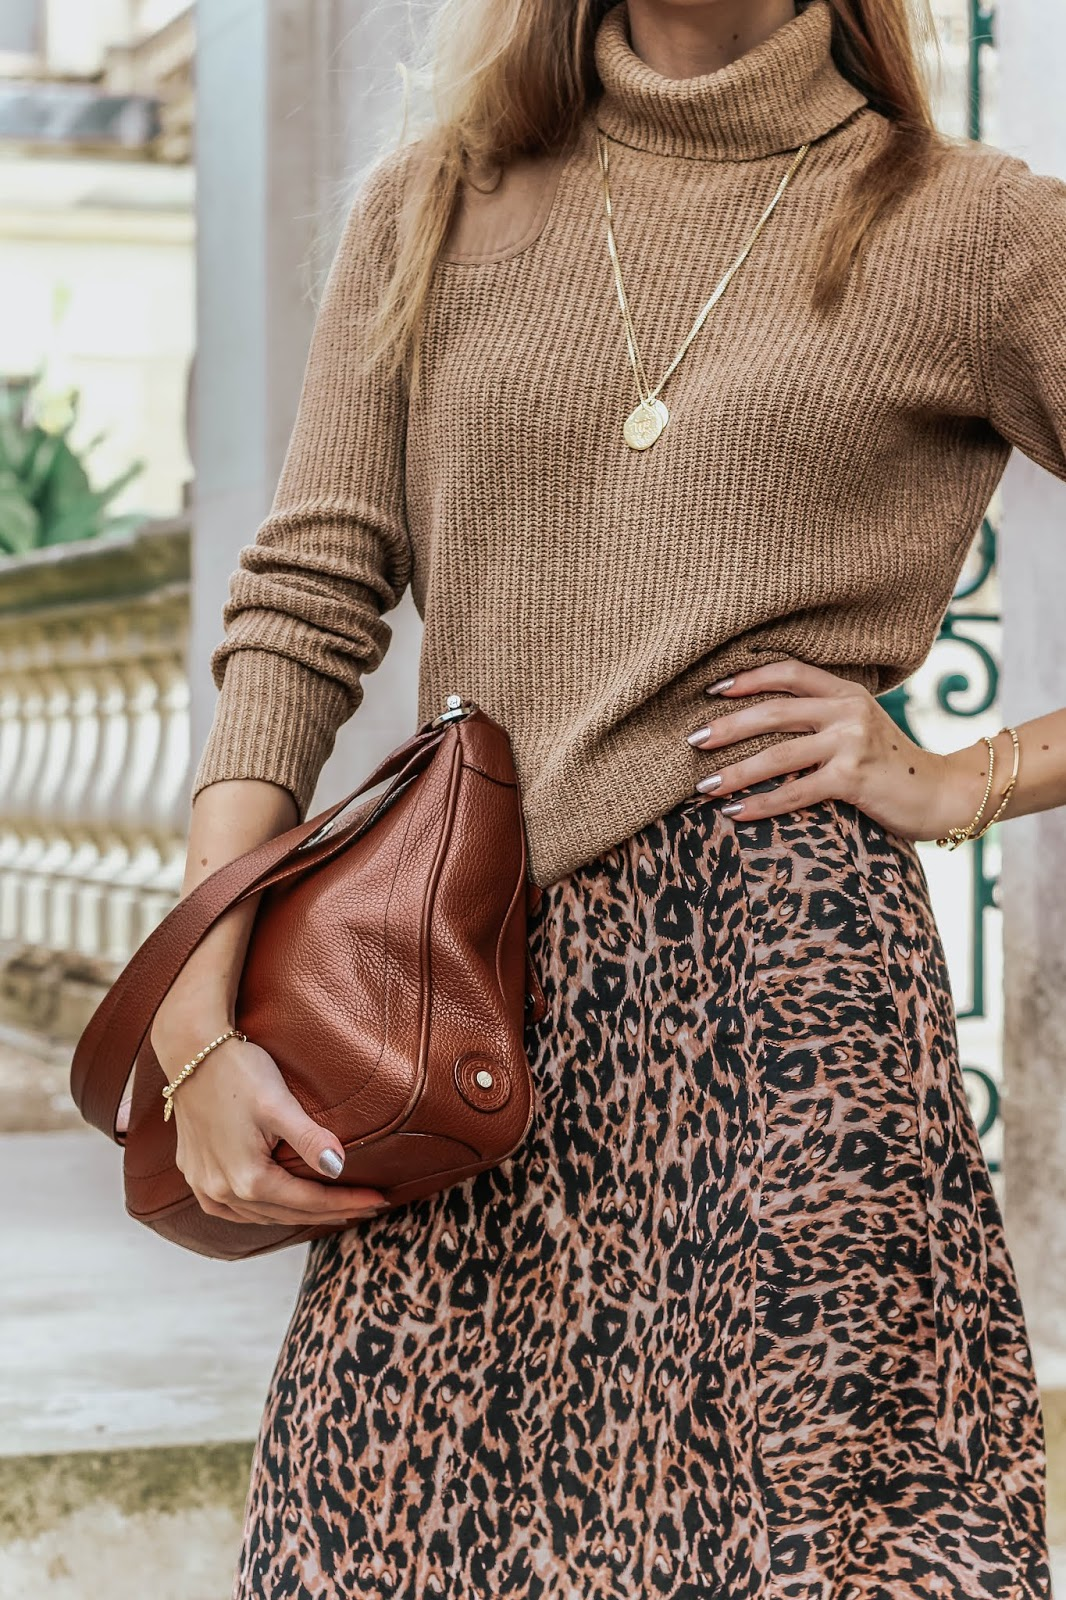 How to wear animal leopard print this season